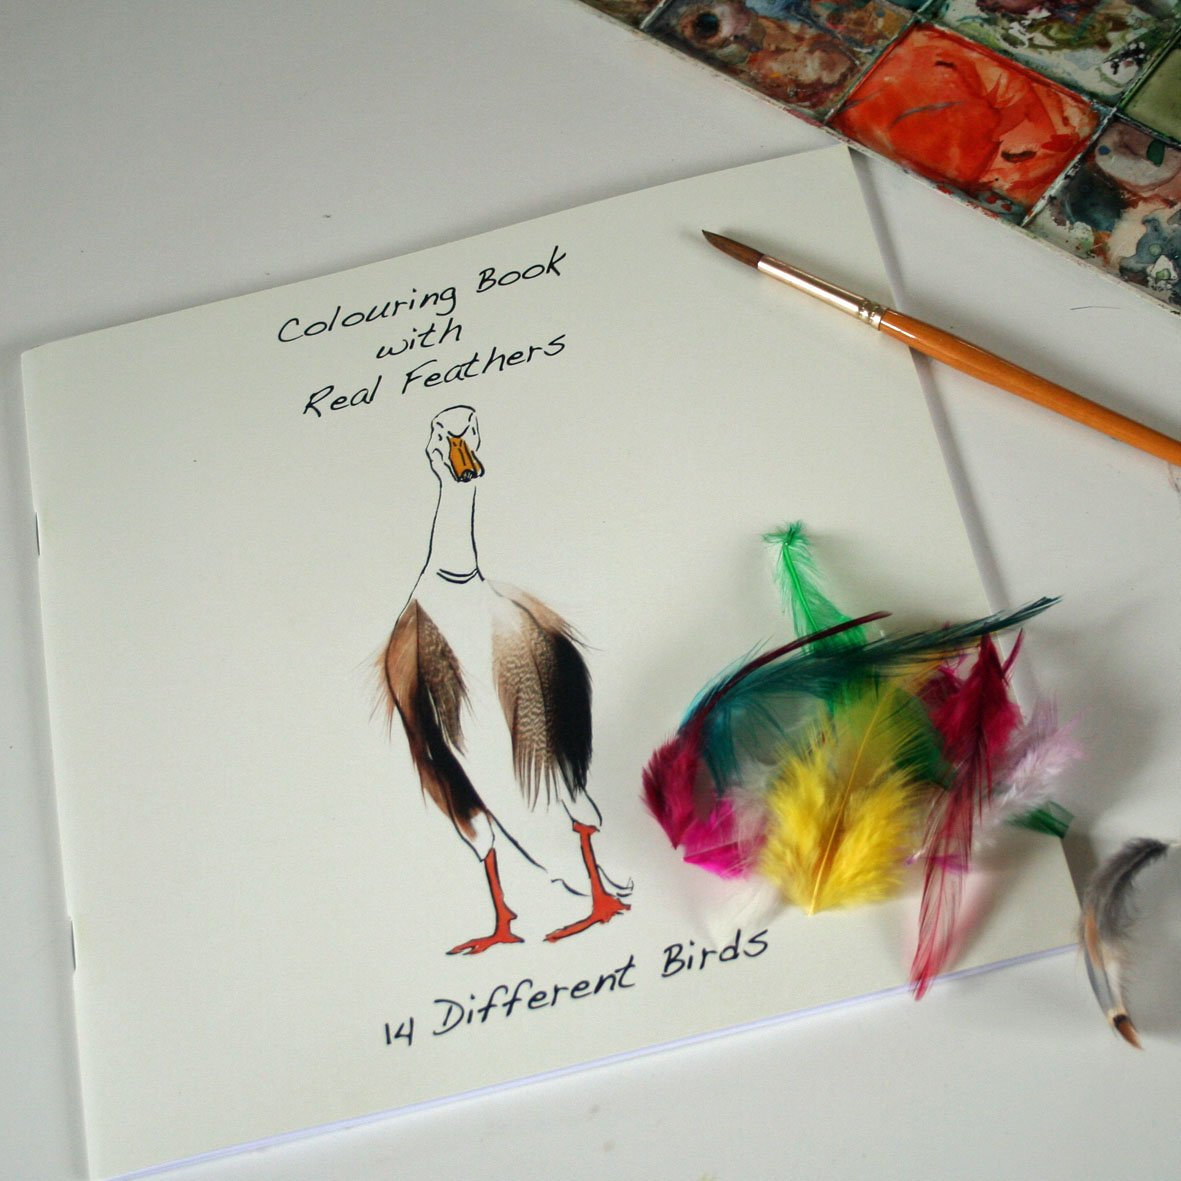 Colouring Book with Feathers